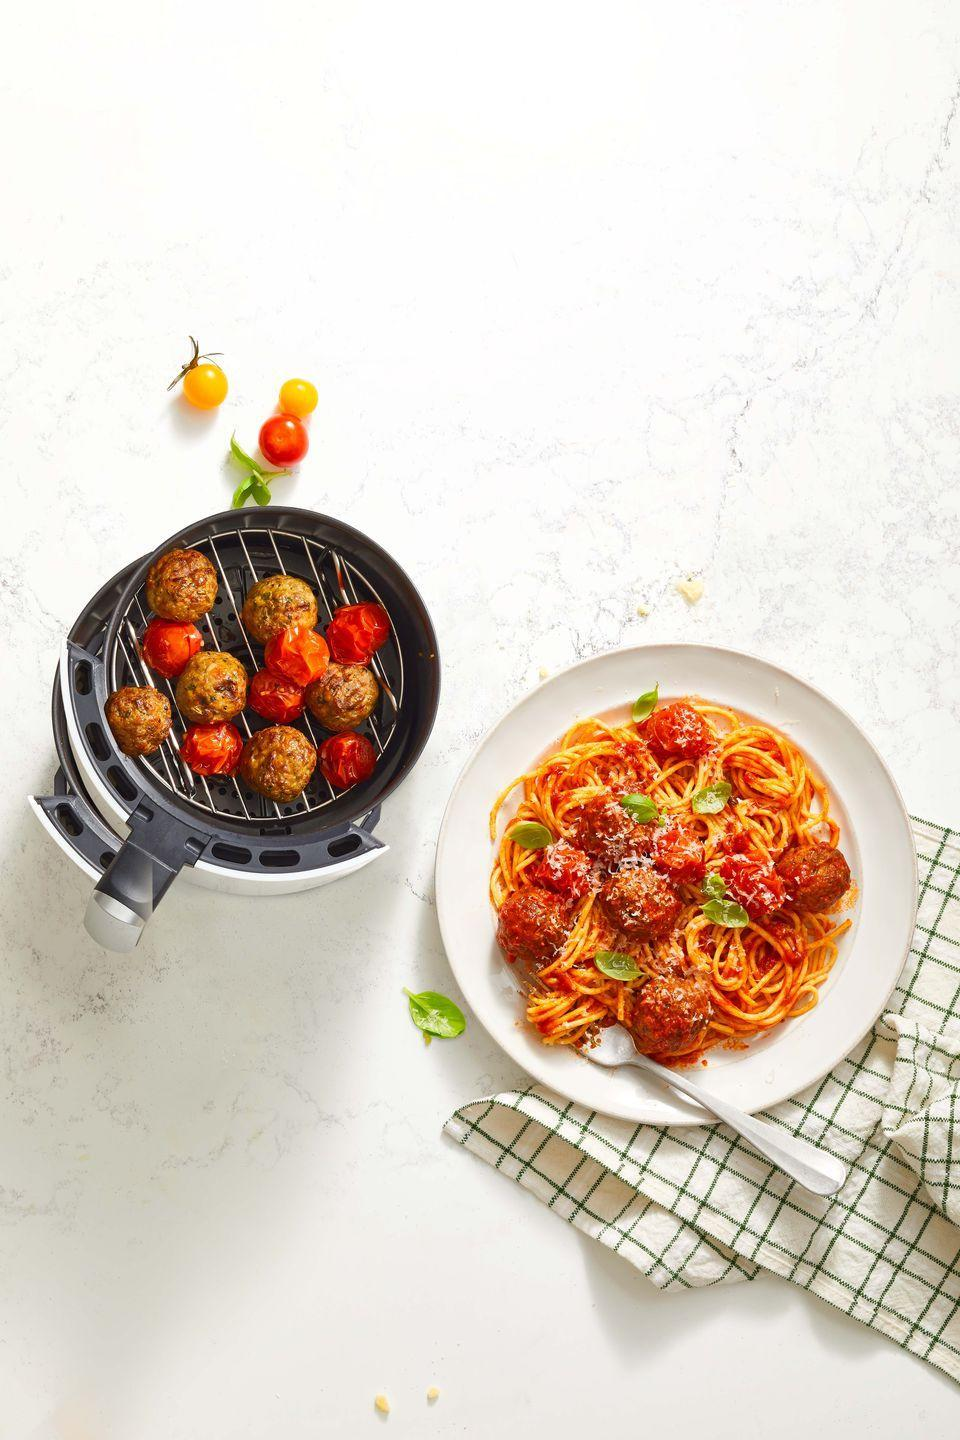 """<p>Forget frying meatballs on the stovetop (so messy!) or baking them in the oven—air fryer meatballs are a cinch to make and even easier to clean up. </p><p><em><a href=""""https://www.goodhousekeeping.com/food-recipes/easy/a37145375/air-fryer-meatballs-recipe/"""" rel=""""nofollow noopener"""" target=""""_blank"""" data-ylk=""""slk:Get the recipe for Spaghetti and Air Fryer Meatballs »"""" class=""""link rapid-noclick-resp"""">Get the recipe for Spaghetti and Air Fryer Meatballs »</a></em></p>"""